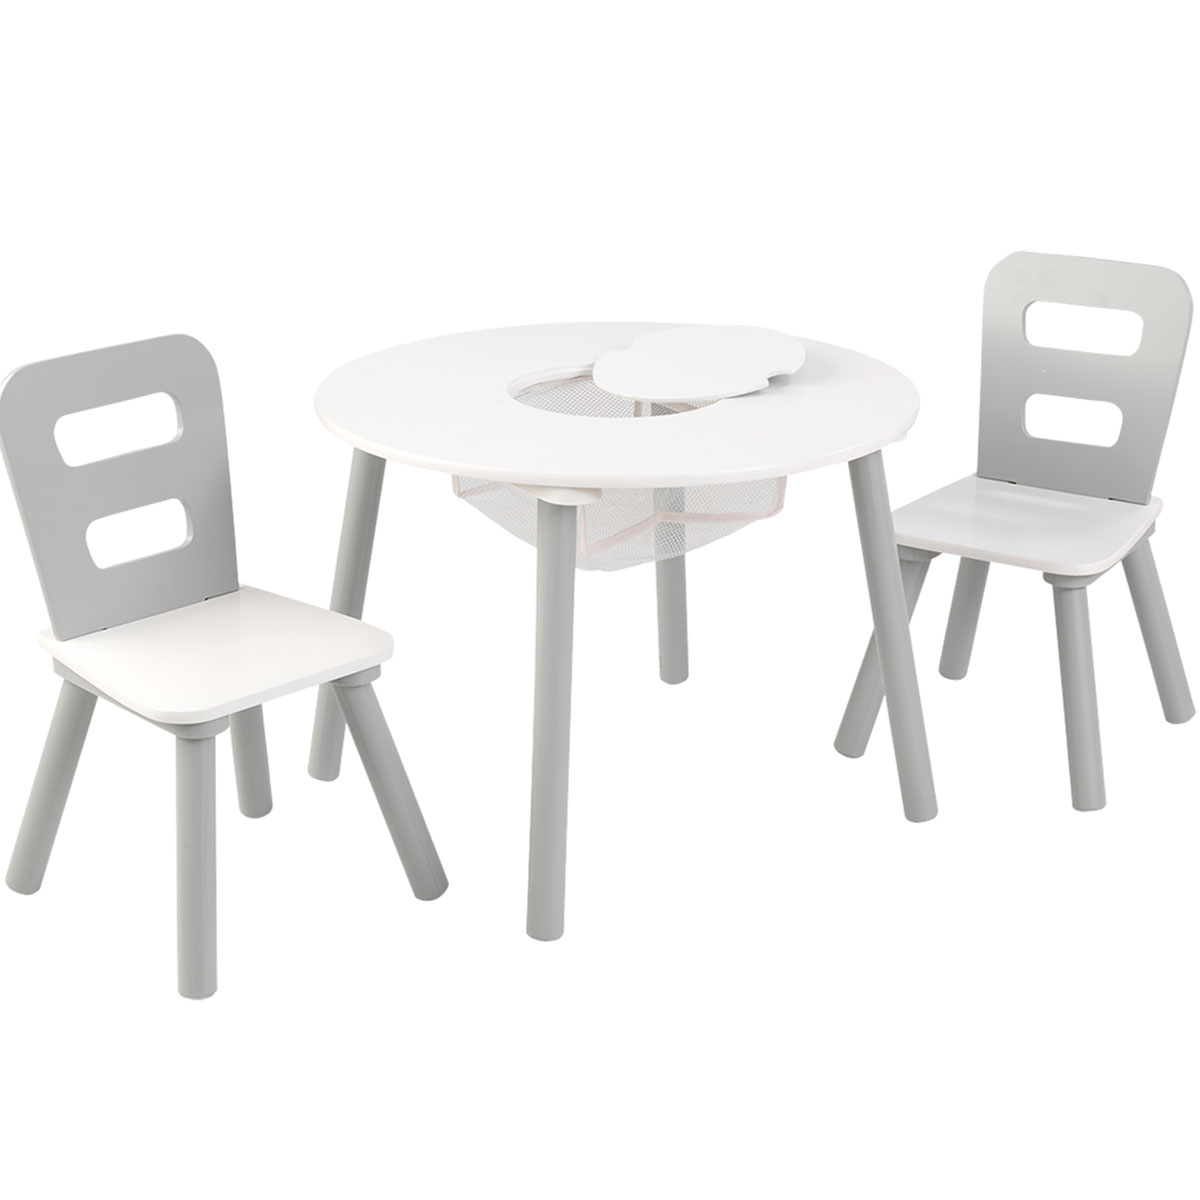 KidKraft Round Table and 2-Chair Set - Gray and White  sc 1 st  PIRUM Holzspielzeuge : kidkraft table and chair set - pezcame.com